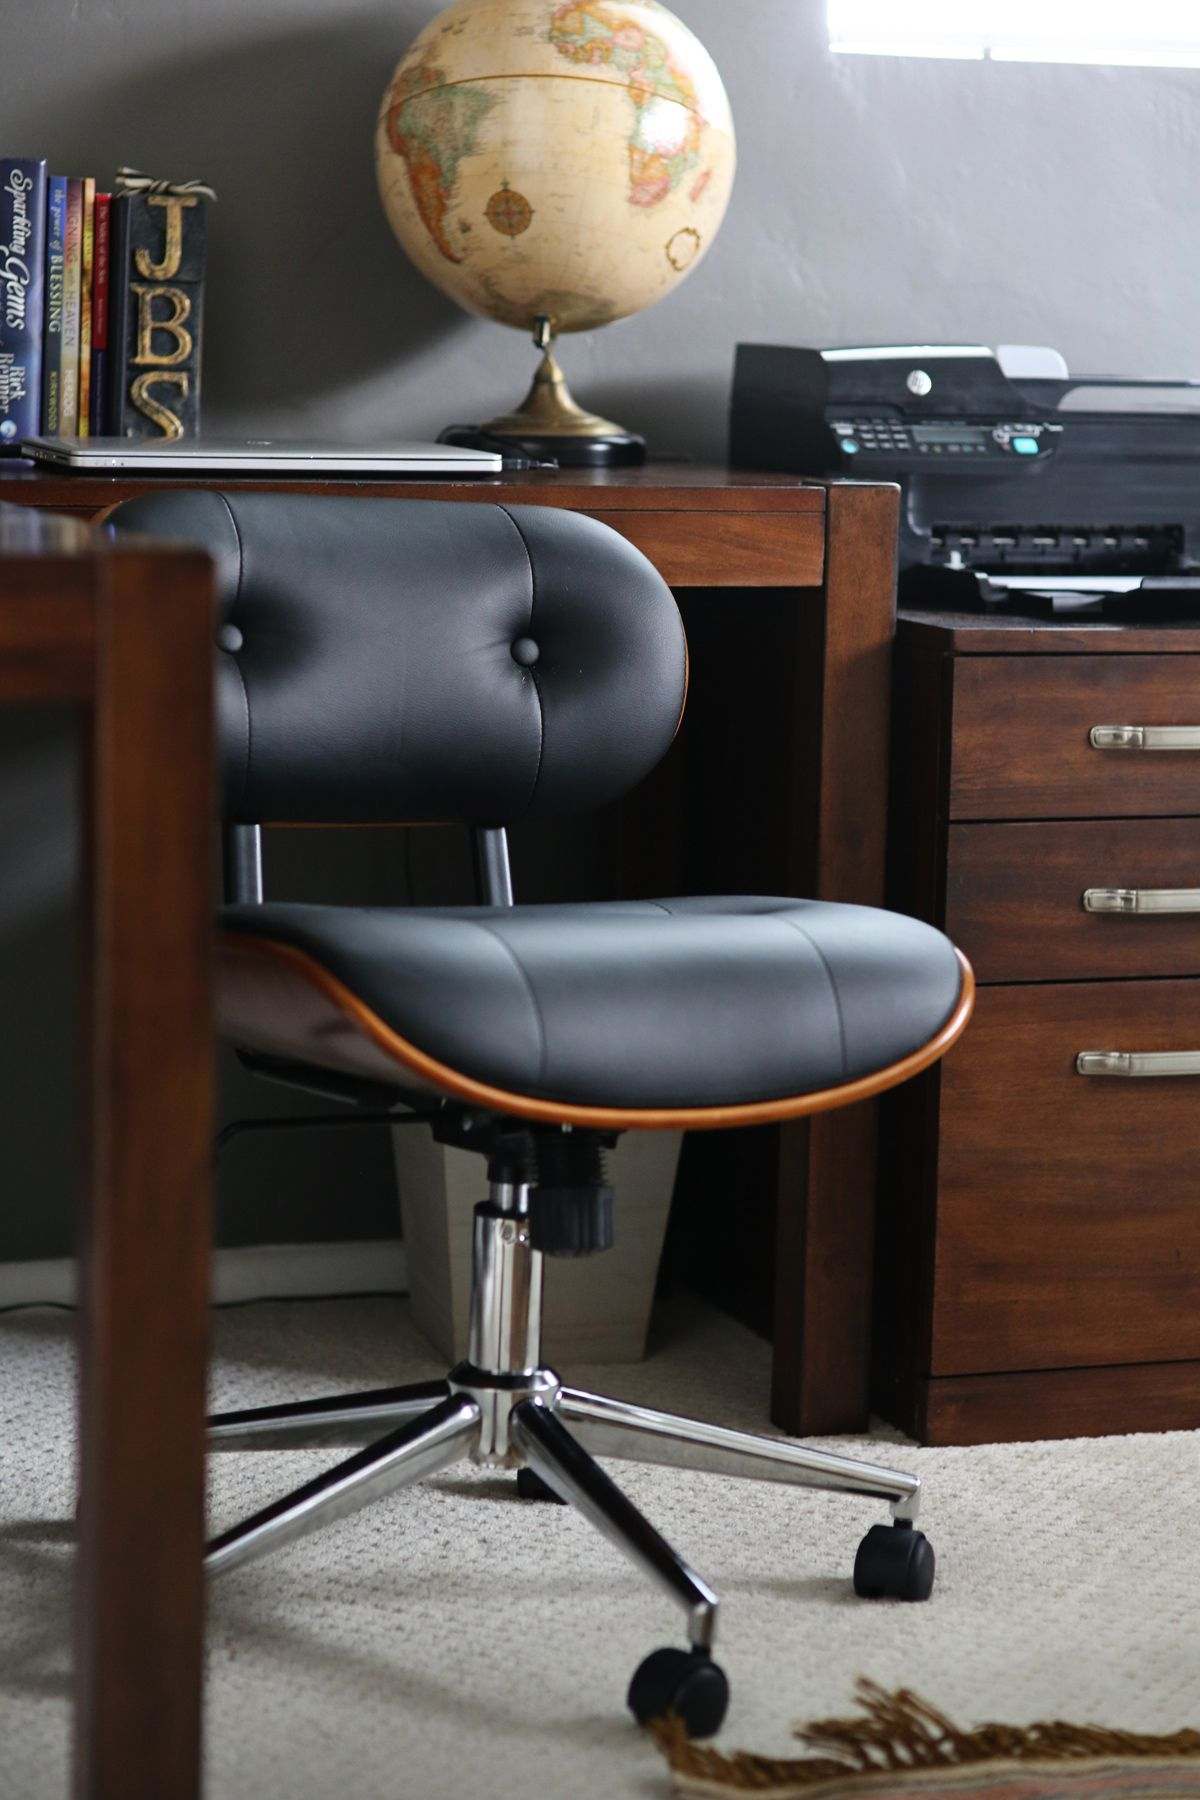 mr. gets a new desk chair | desks, modern and woods